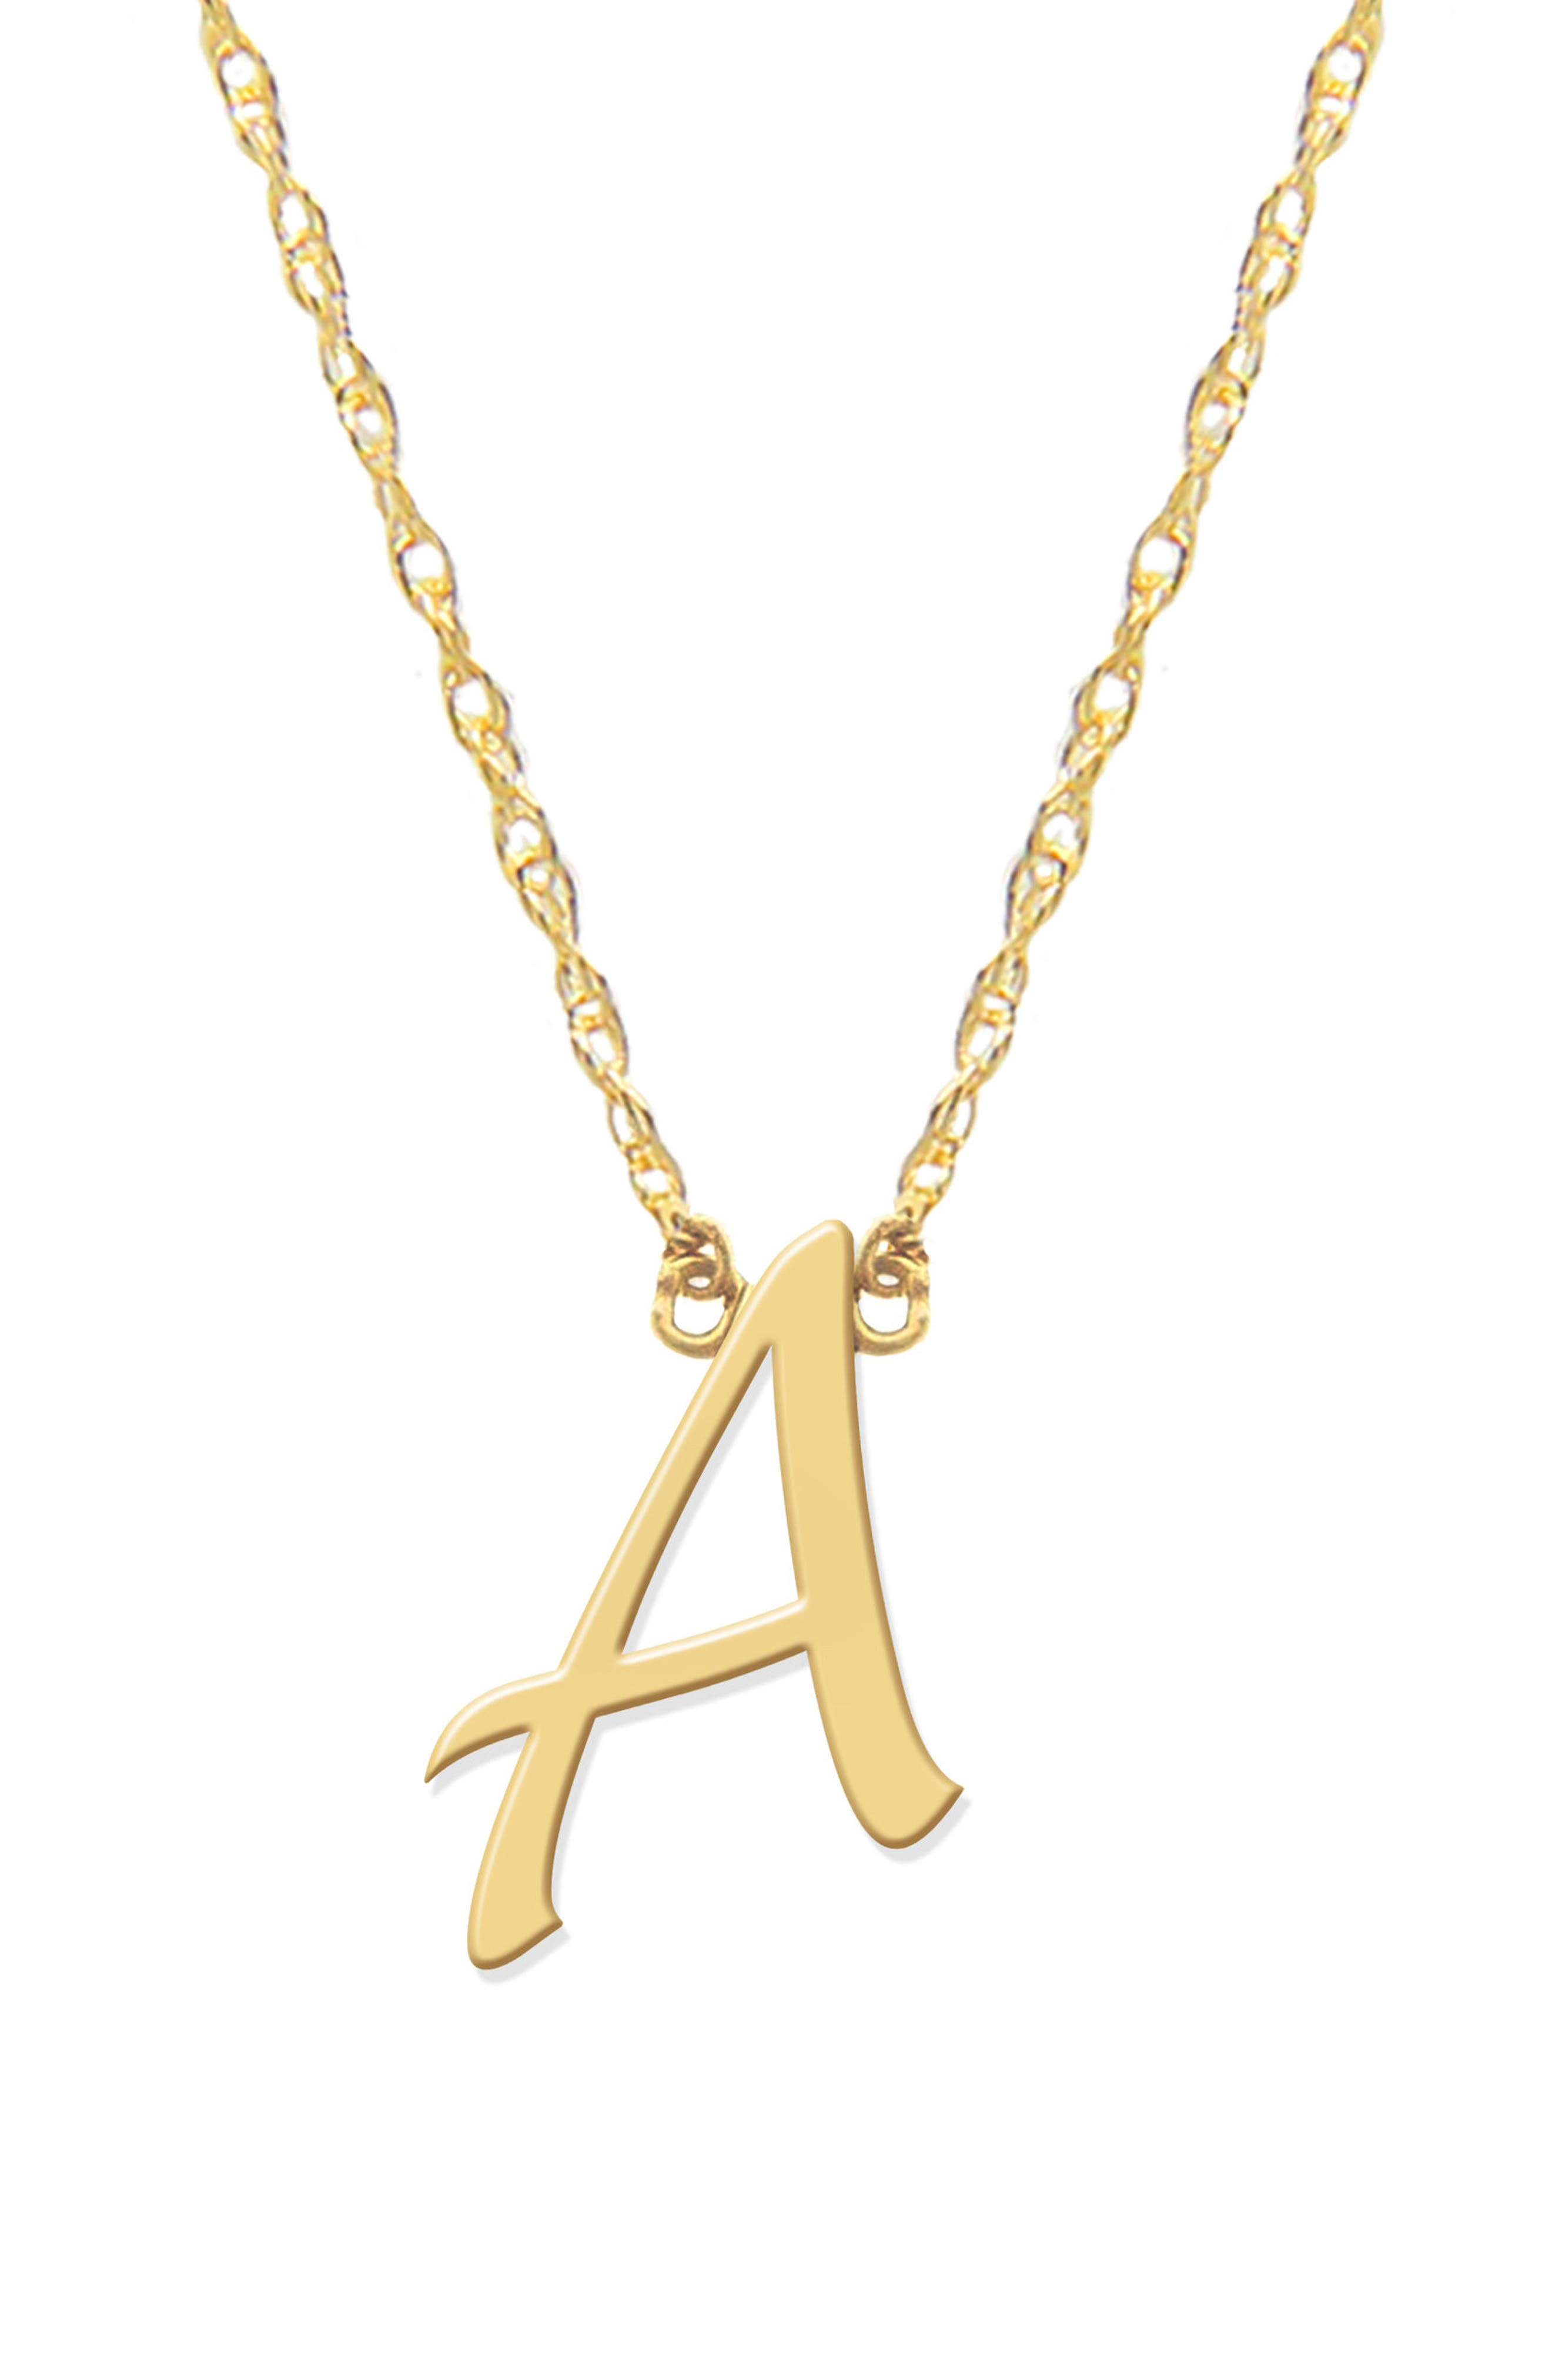 Alternate Image 1 Selected - Jane Basch Designs Script Initial Pendant Necklace